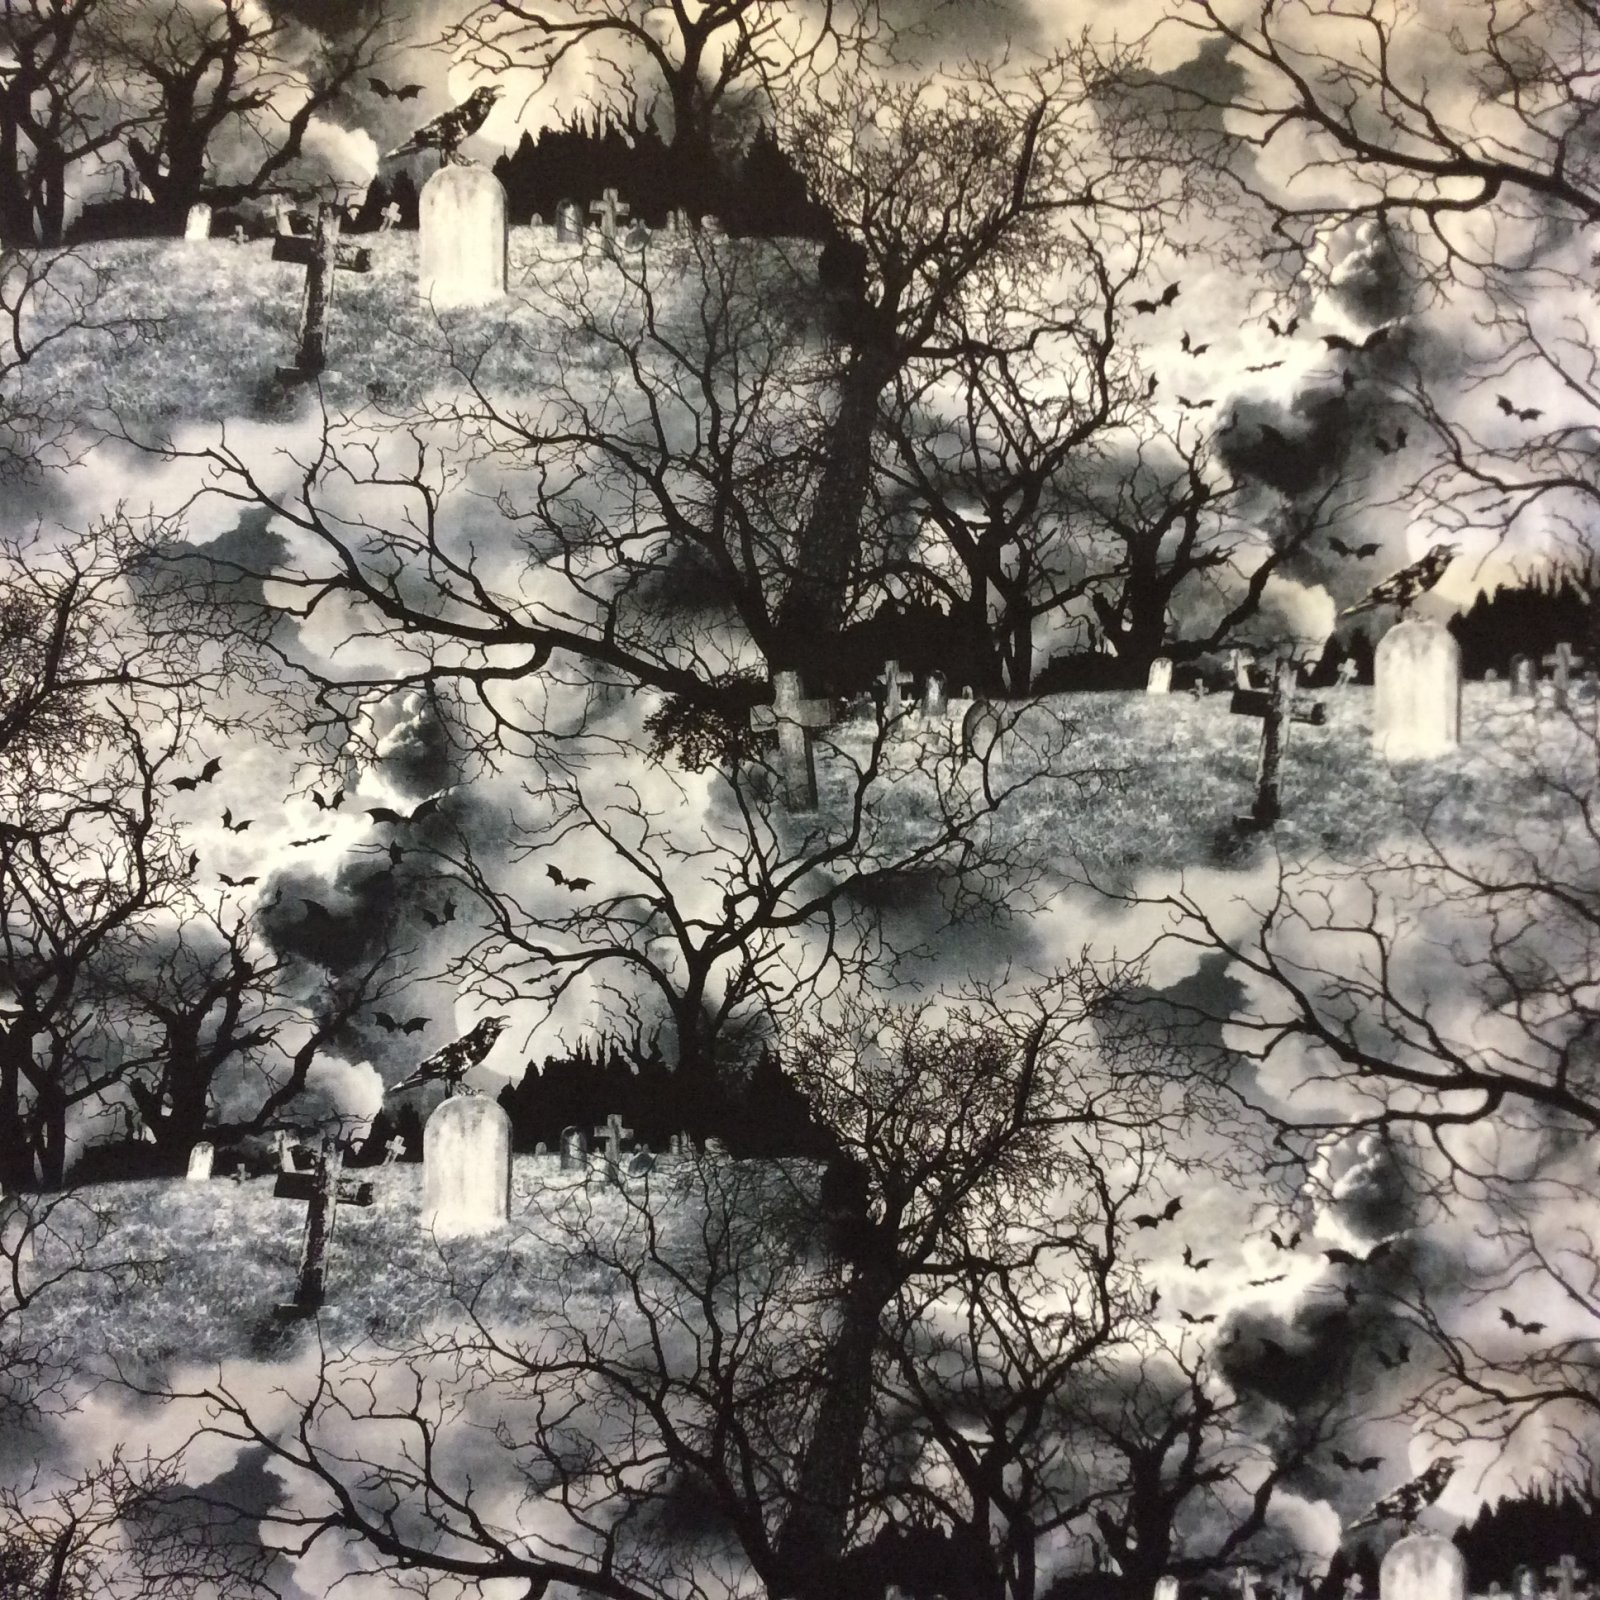 Halloween Spooky Goth Raven Crow Cemetery Graveyard Tree Full Moon Cotton Quilt Fabric FT194